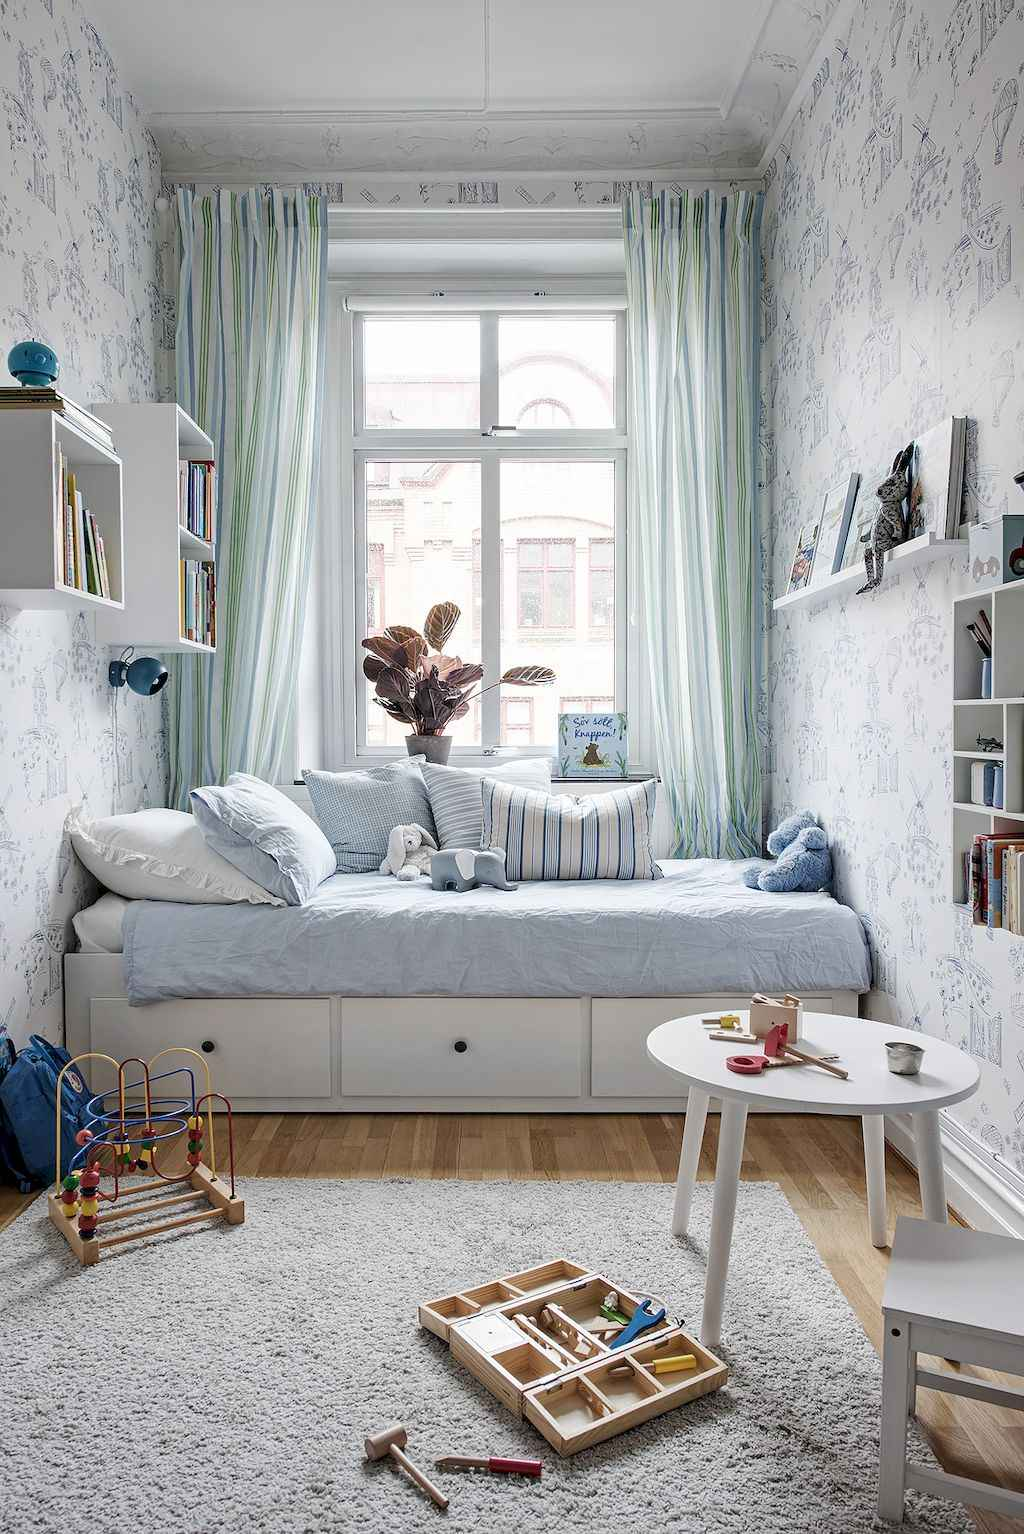 Awesome ideas bedroom for kids (22)